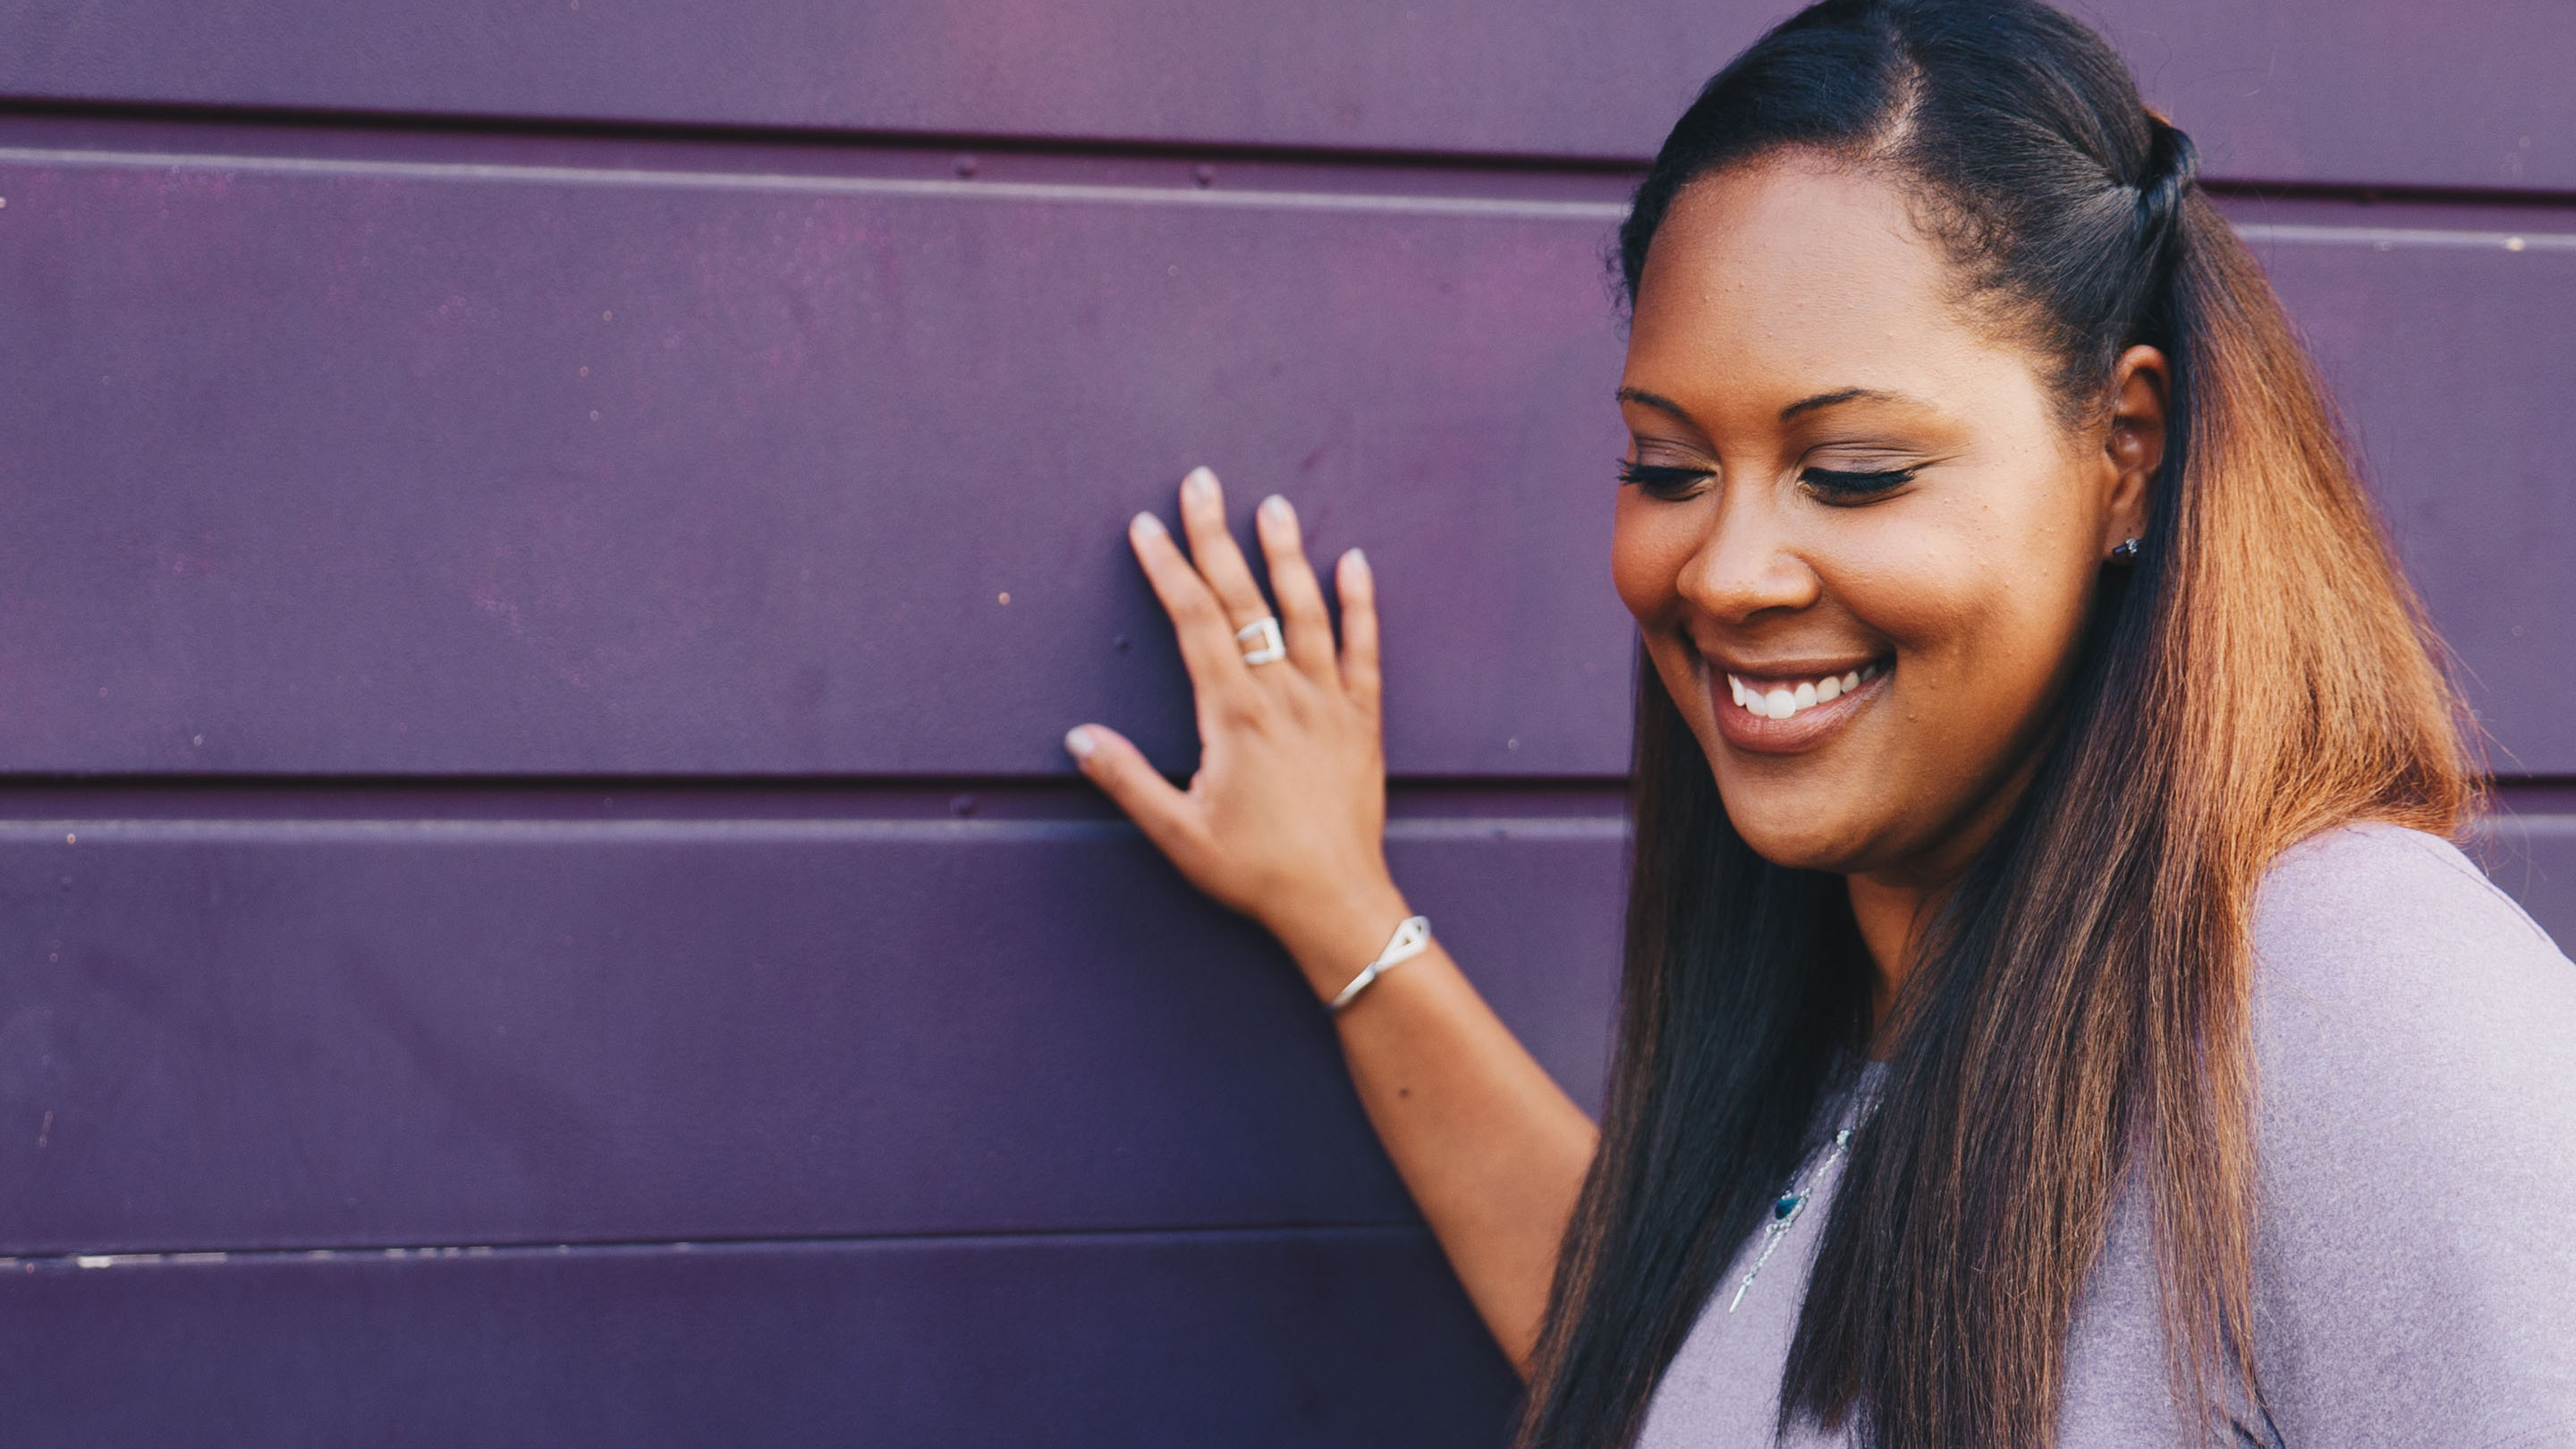 3 Benefits of Breast Reduction You May Not Be Aware Of